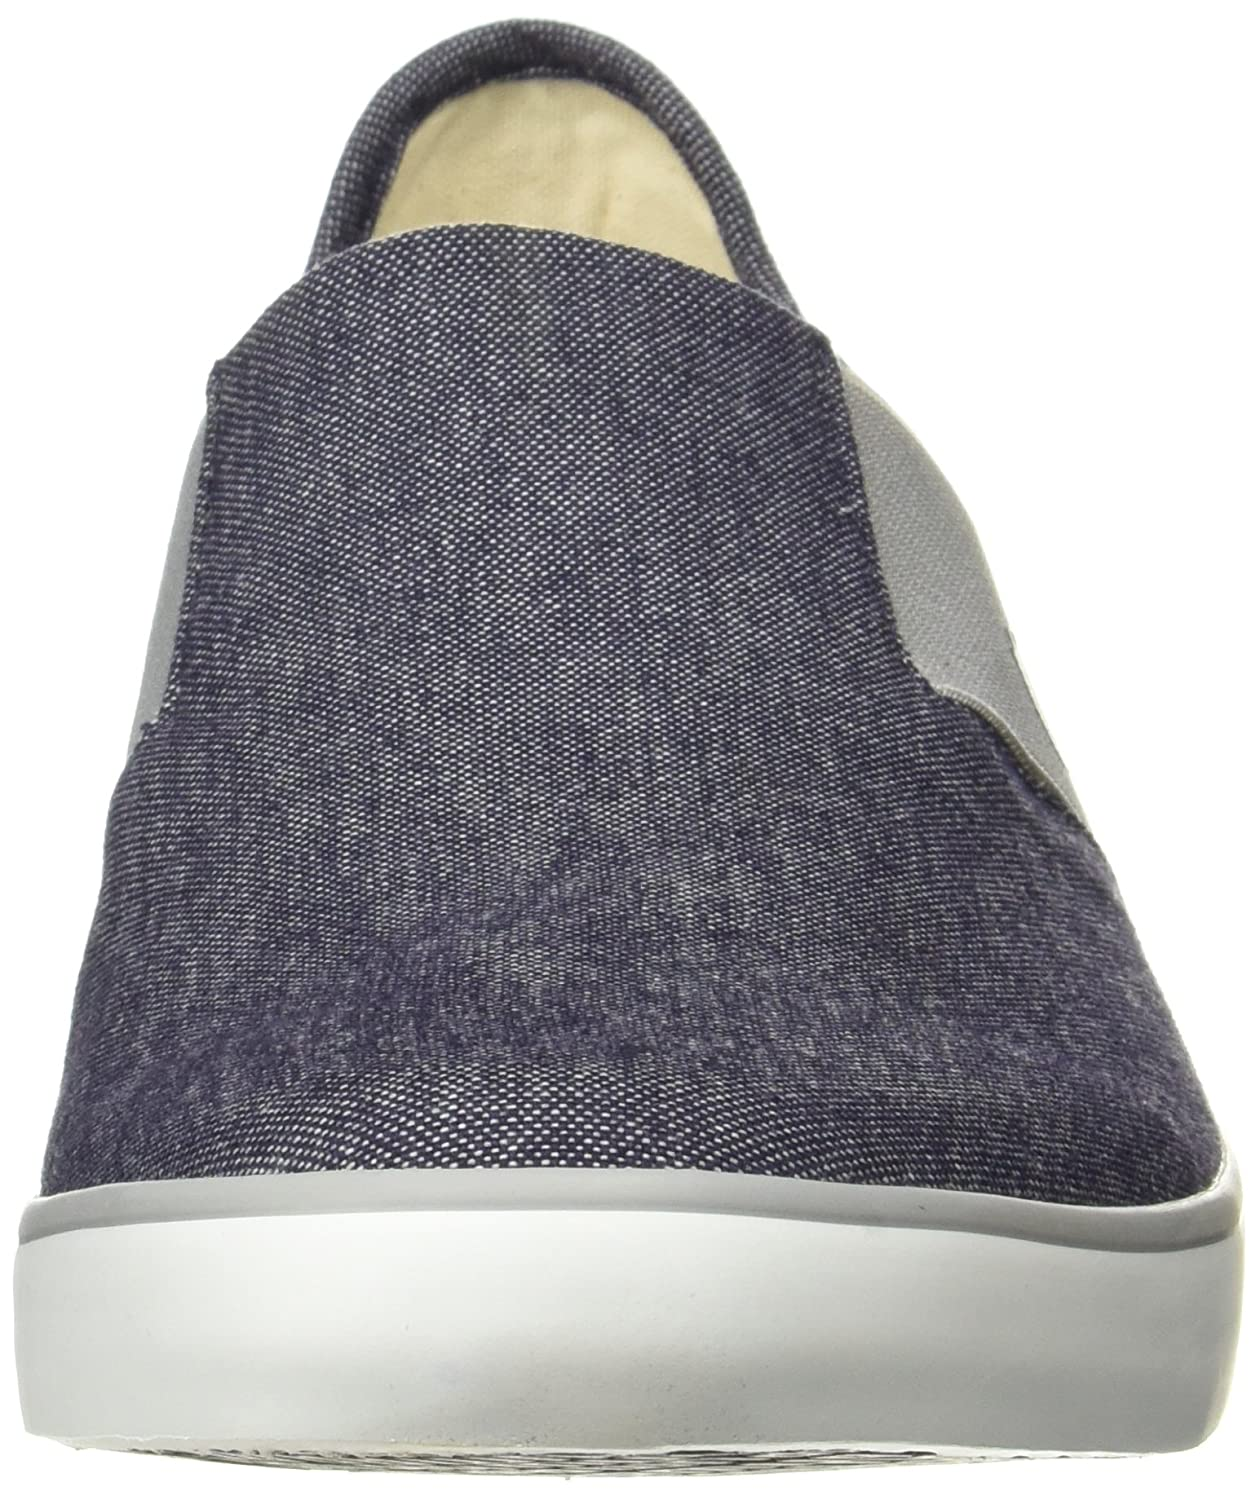 b89644e6d8f168 Puma Unisex s Lazy Slip On Ii Dp Peacoat White-Quarry Sneakers-11 UK India  (46 EU) (36078519)  Buy Online at Low Prices in India - Amazon.in